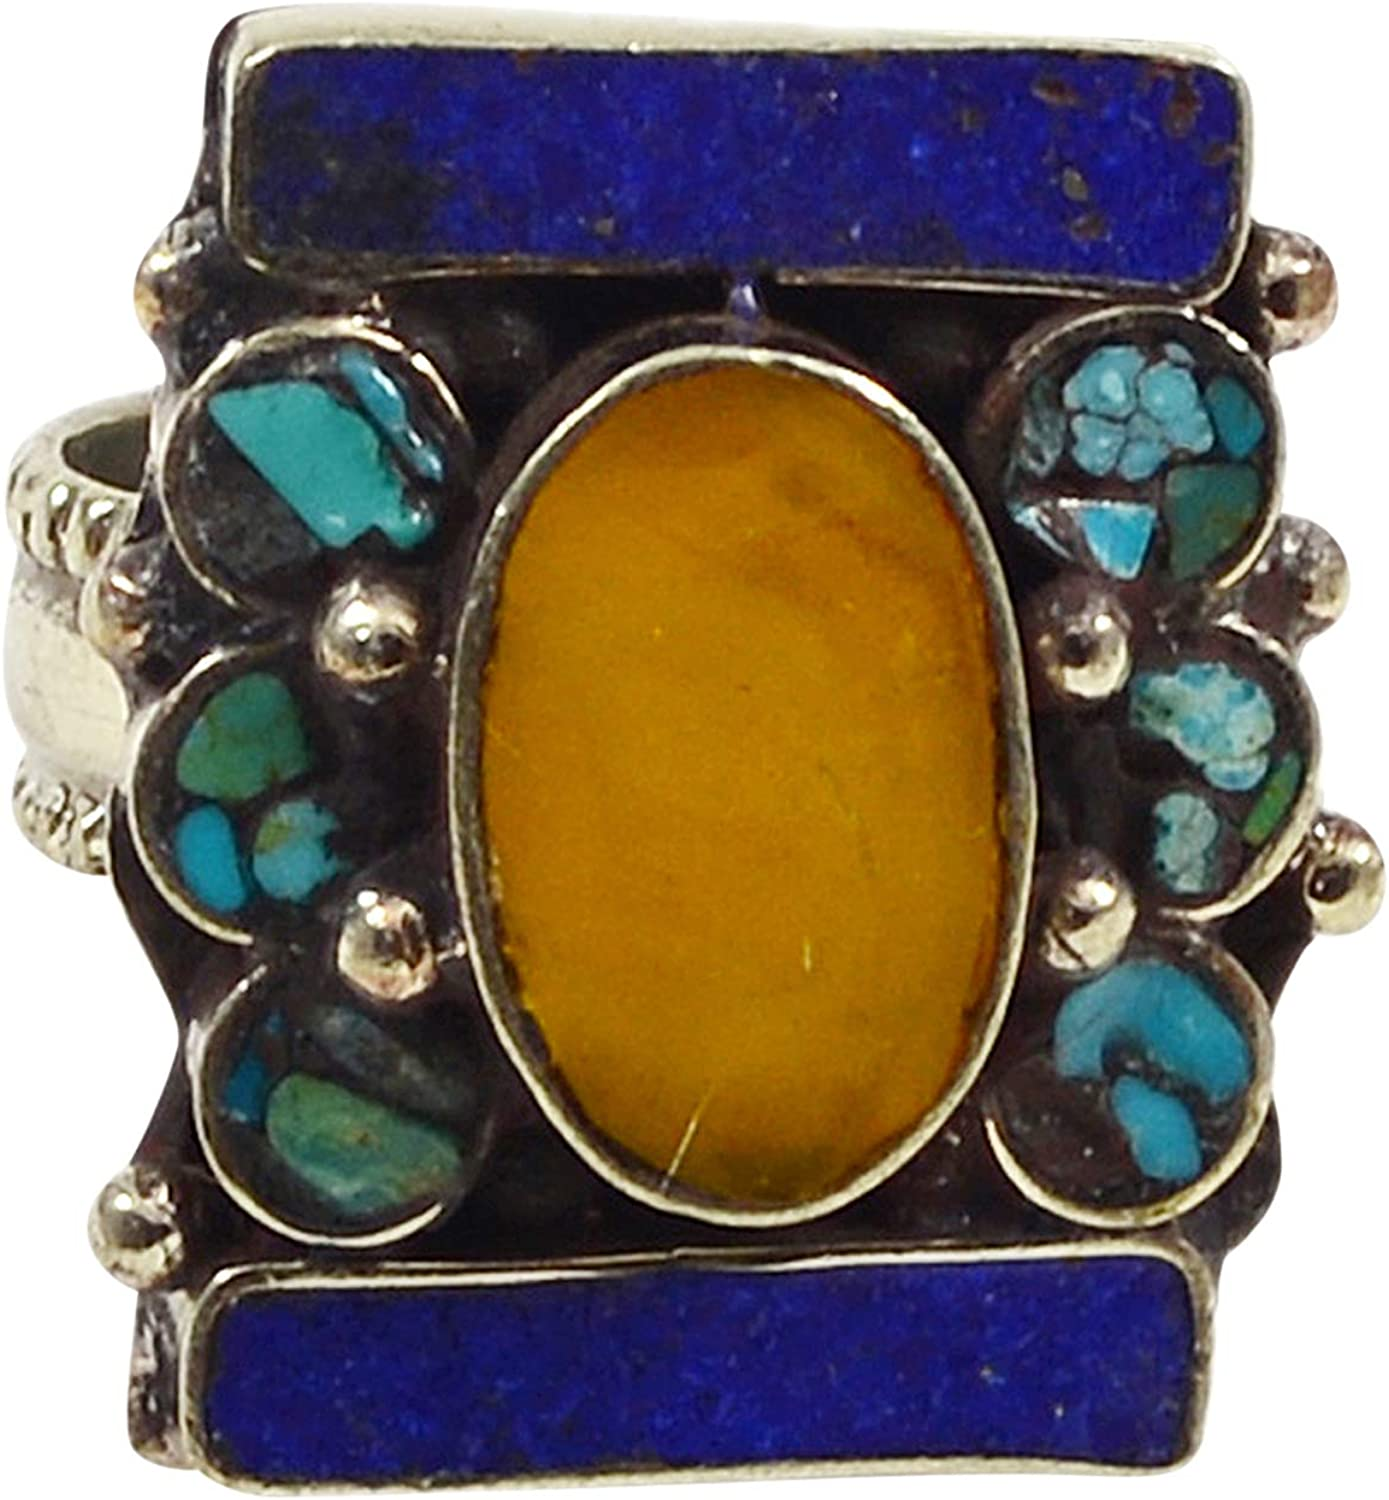 Saamarth Impex Lapis Lazuli /& Turquoise 925 Silver Plated Ring Sz 10 PG-117776